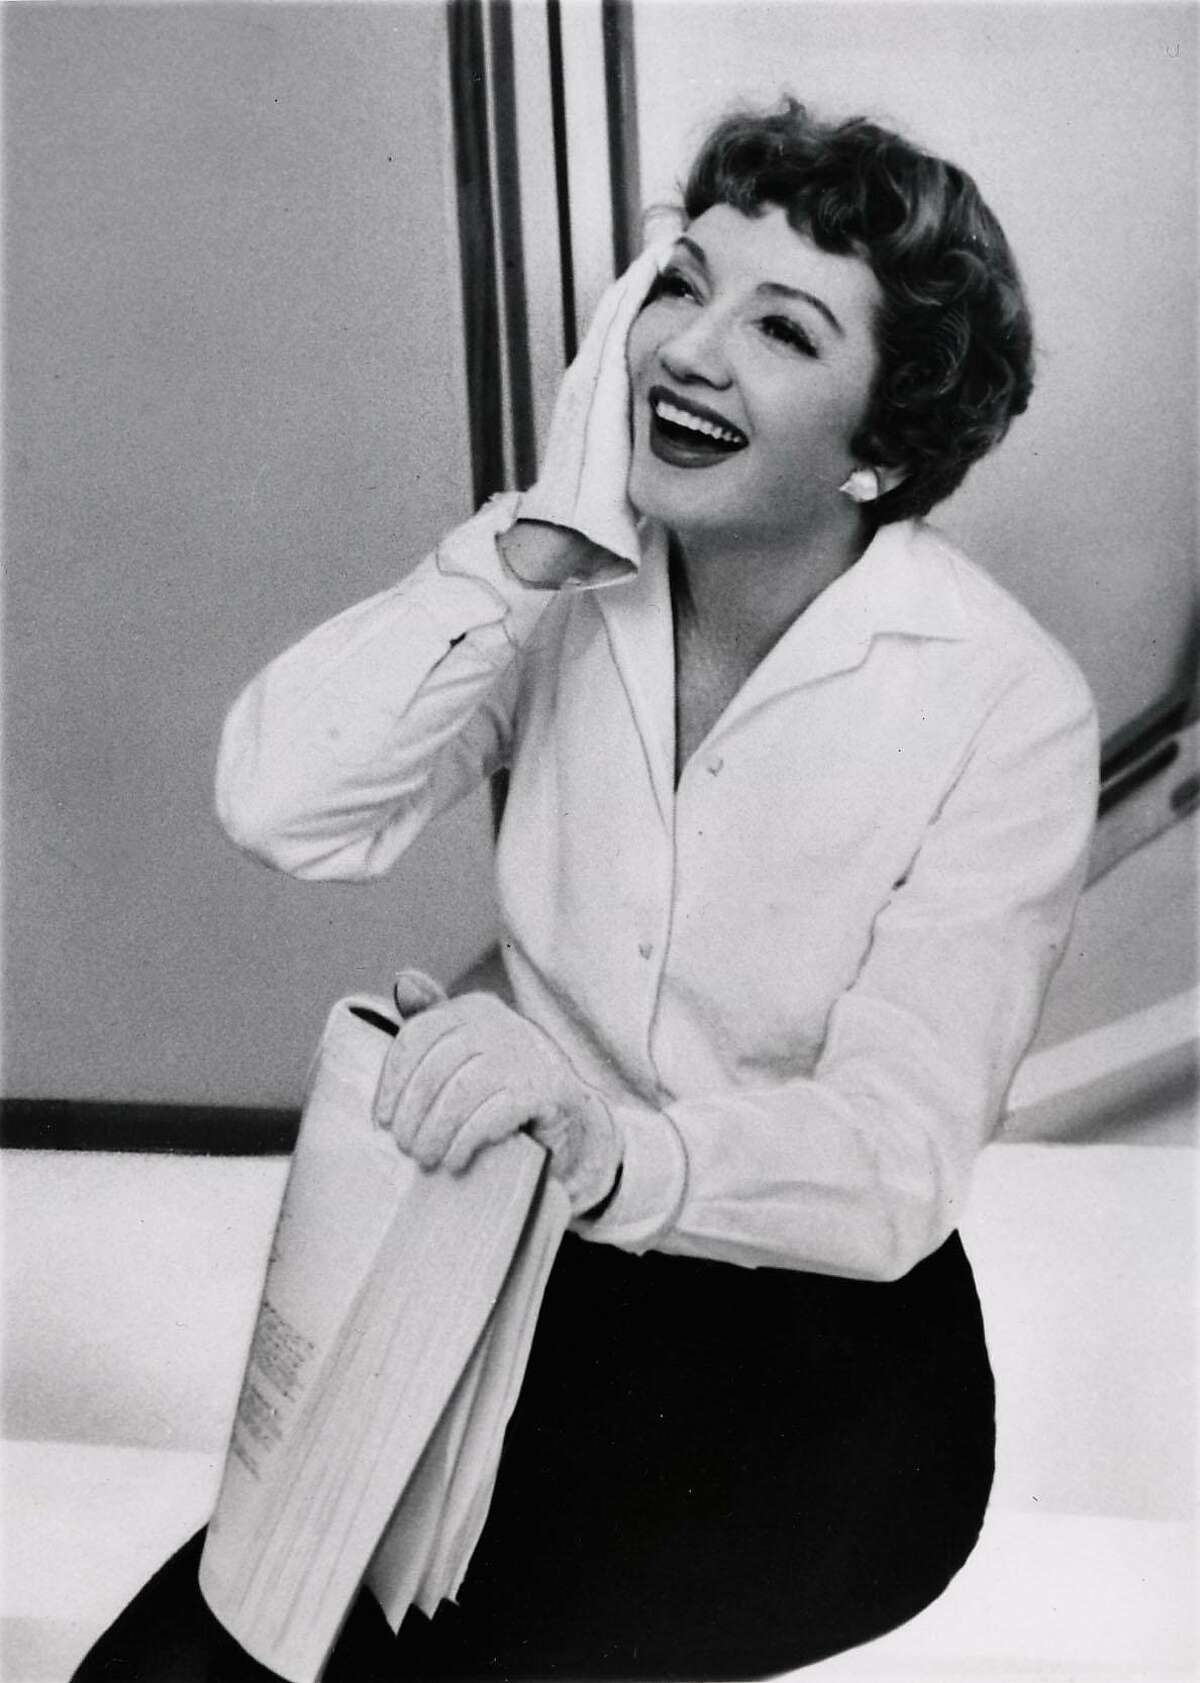 Claudette Colbert, actress. Claudette Colbert doesn't know how she developed her famous chuckle, but admits the joyously infectious chortle is part of the Colbert identity.